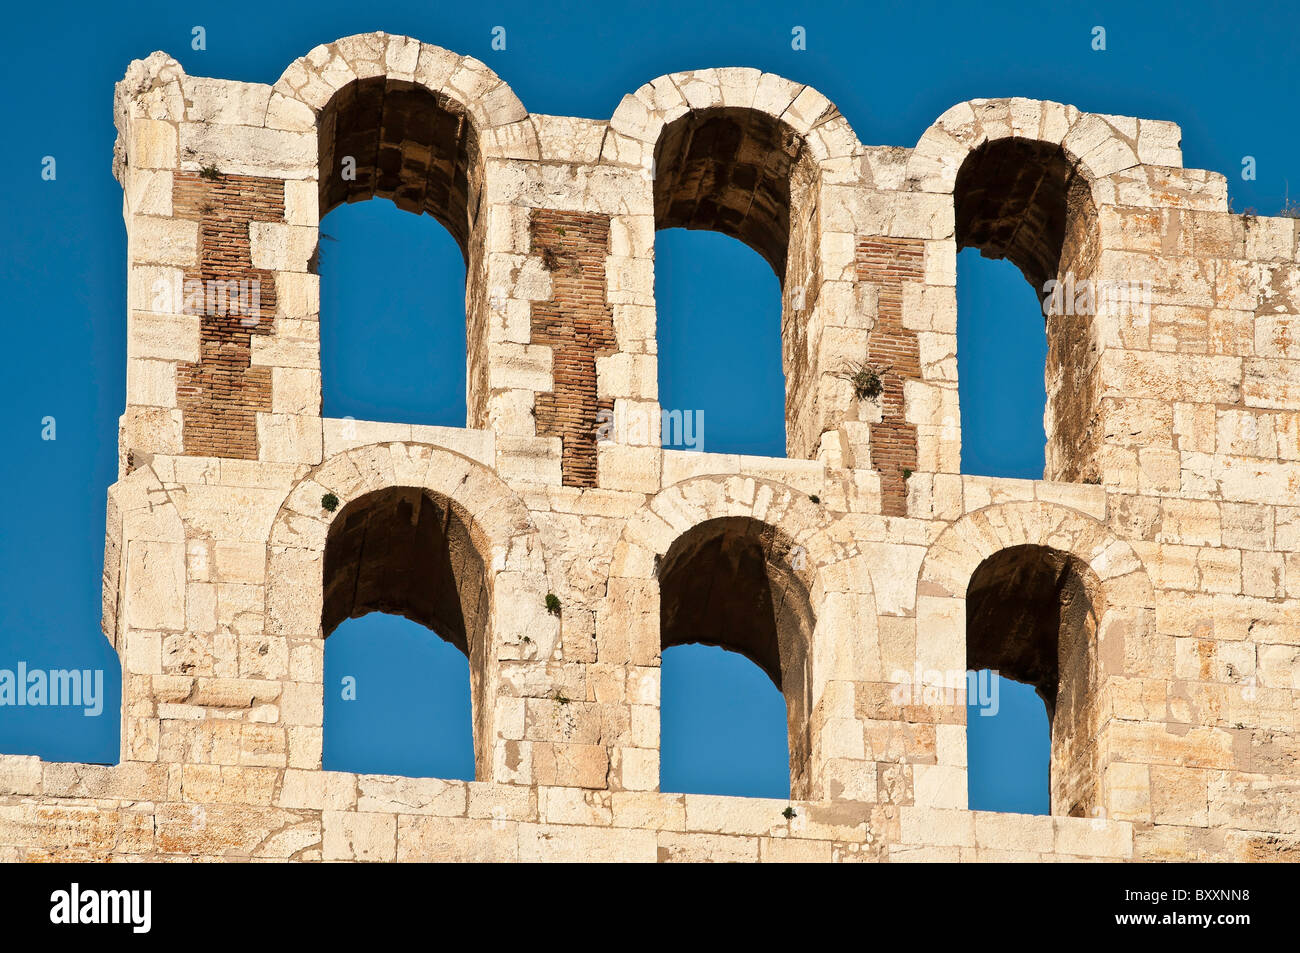 Detail of arches on the Odeon of Herodes Atticus, built in AD 161, on the southern slopes of the Acropolis, Athens, - Stock Image